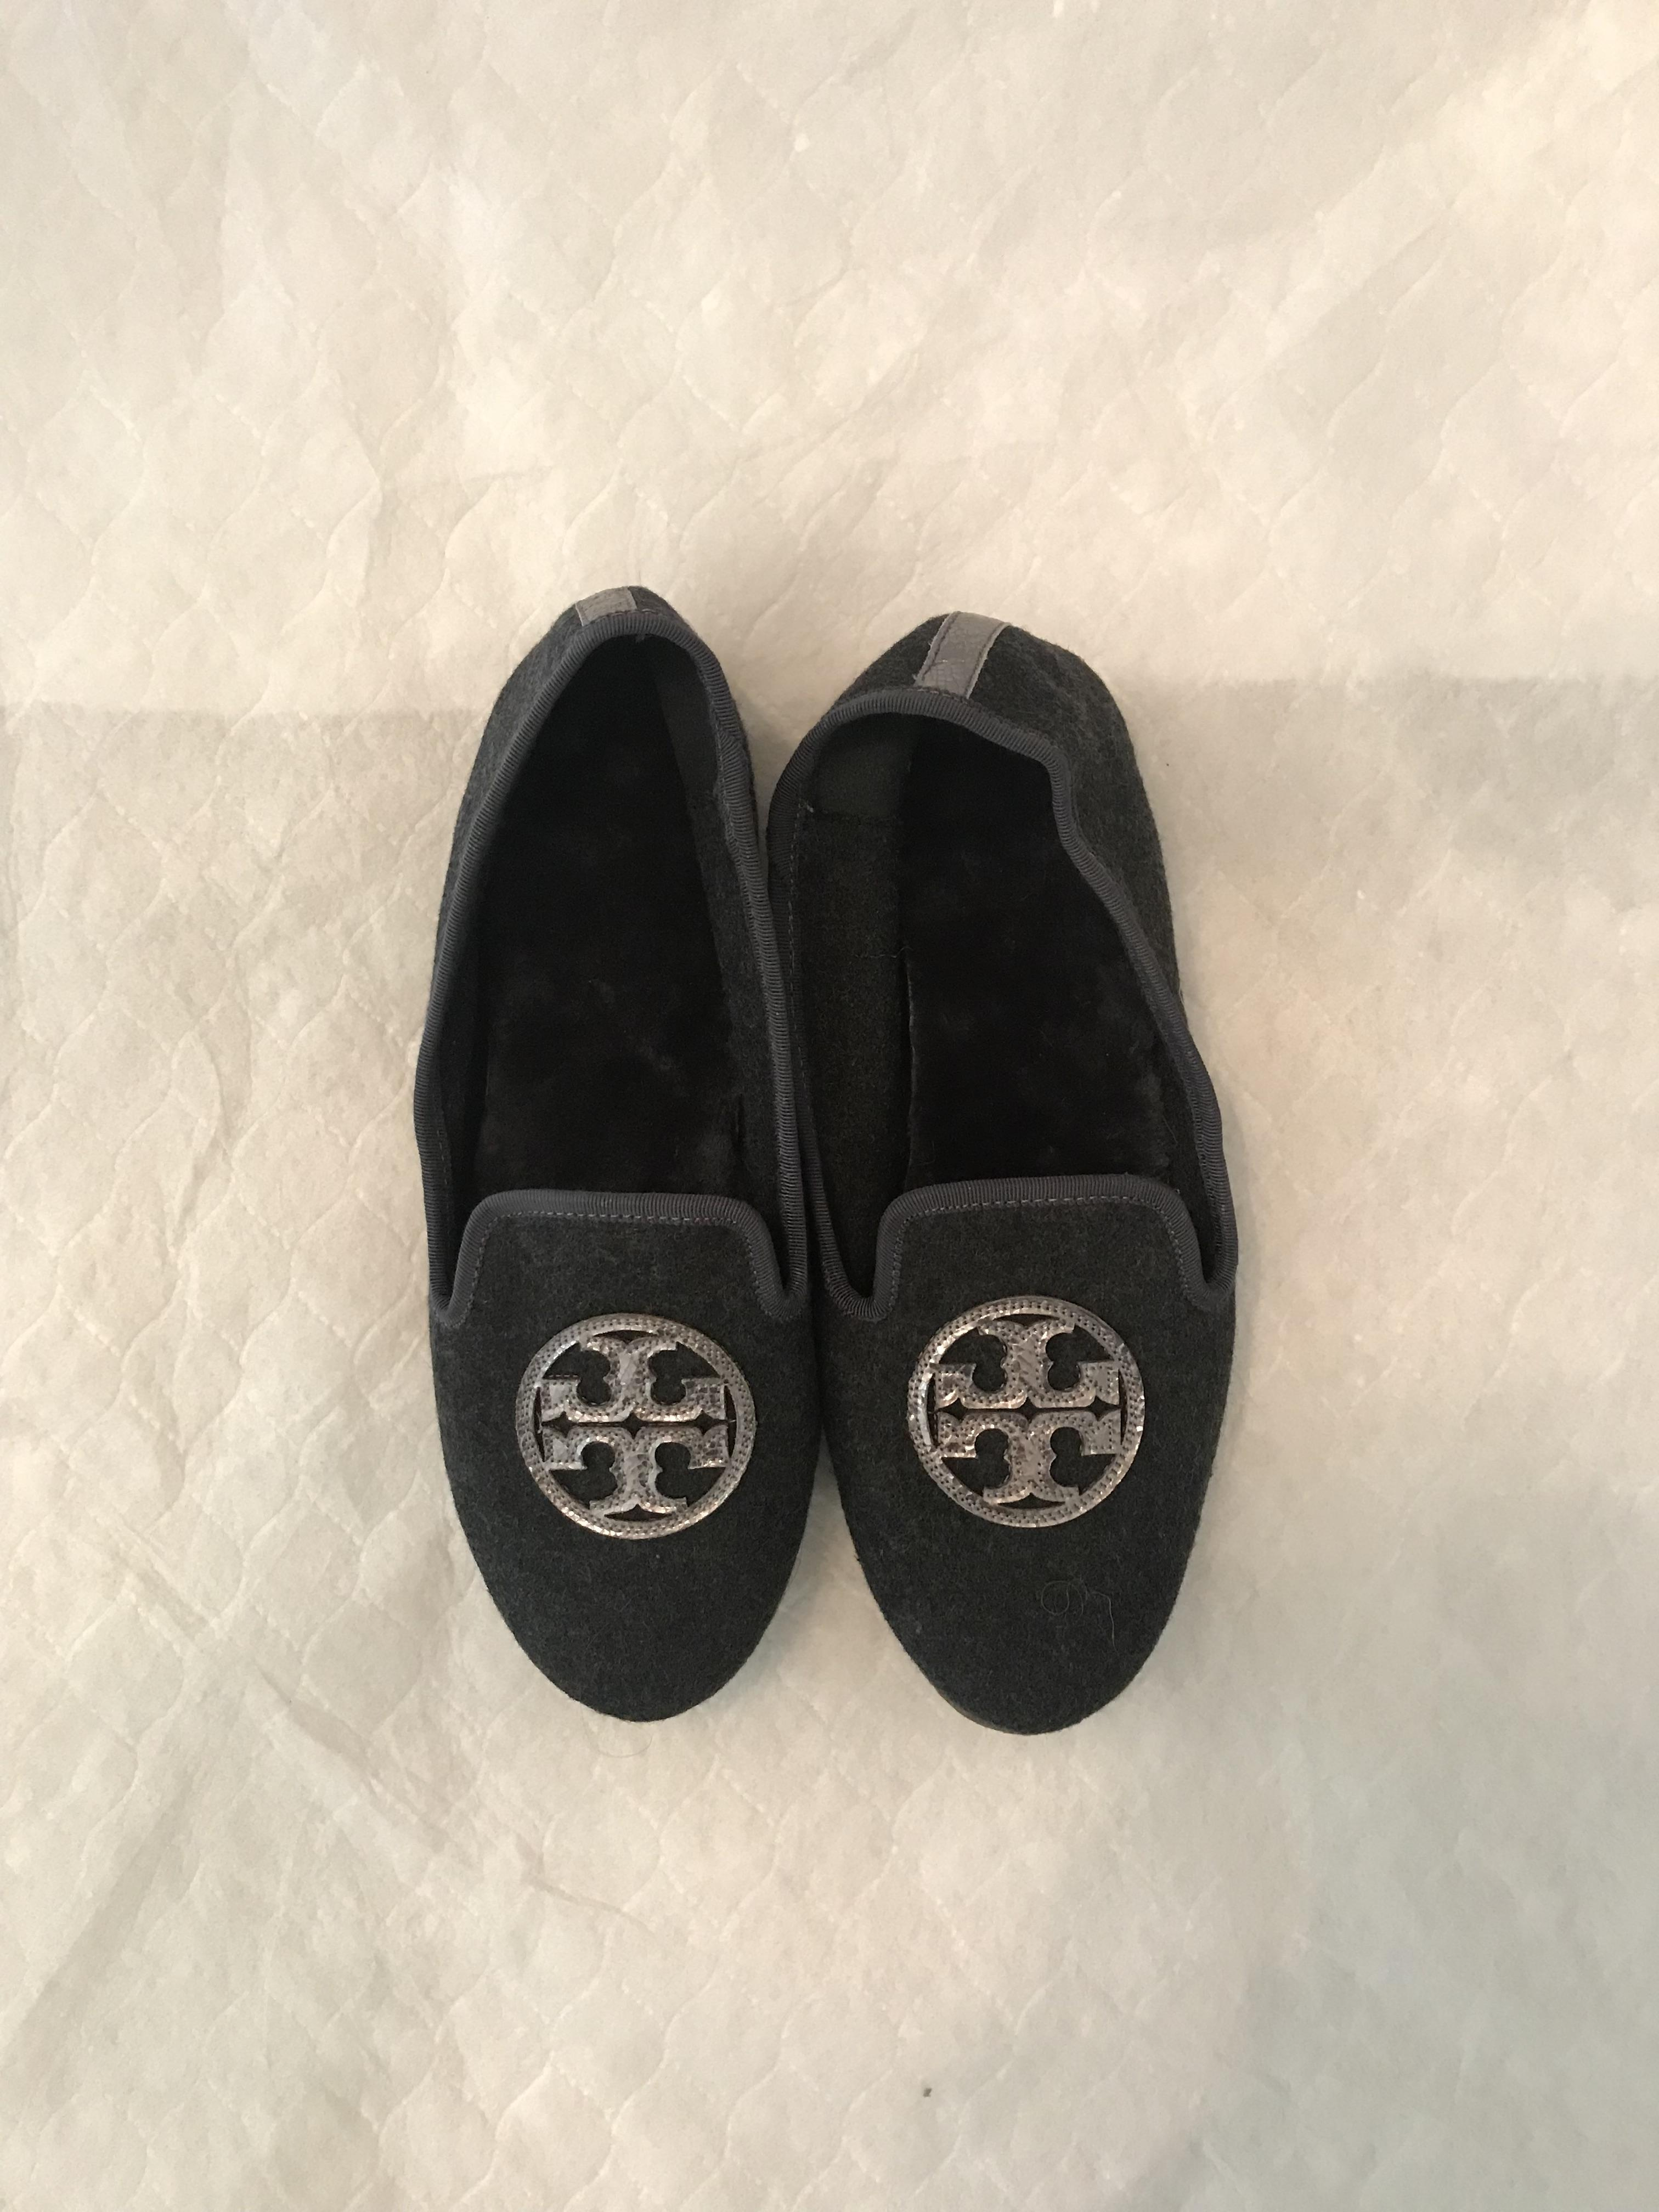 b391a5a91 Flats Size US 9 Regular Tory Burch Burch Burch Grey  Silver Billy Slipper  Slipper.